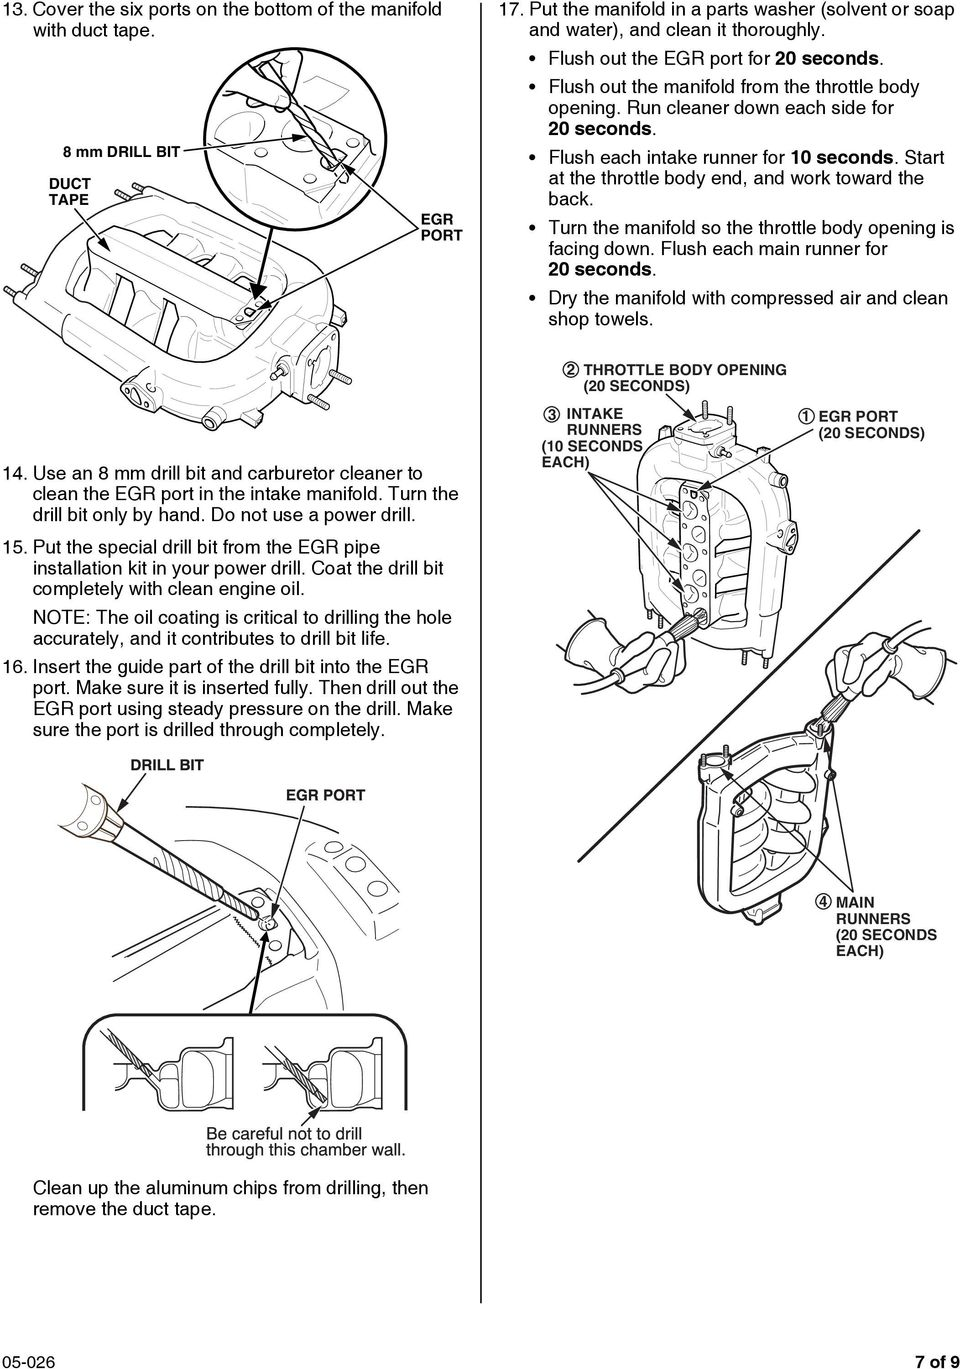 Dtc P0401 P1491 Pdf 2000 Dodge Durango Evaporative System Monitor Schematic Diagram Start At The Throttle Body End And Work Toward Back Turn Manifold